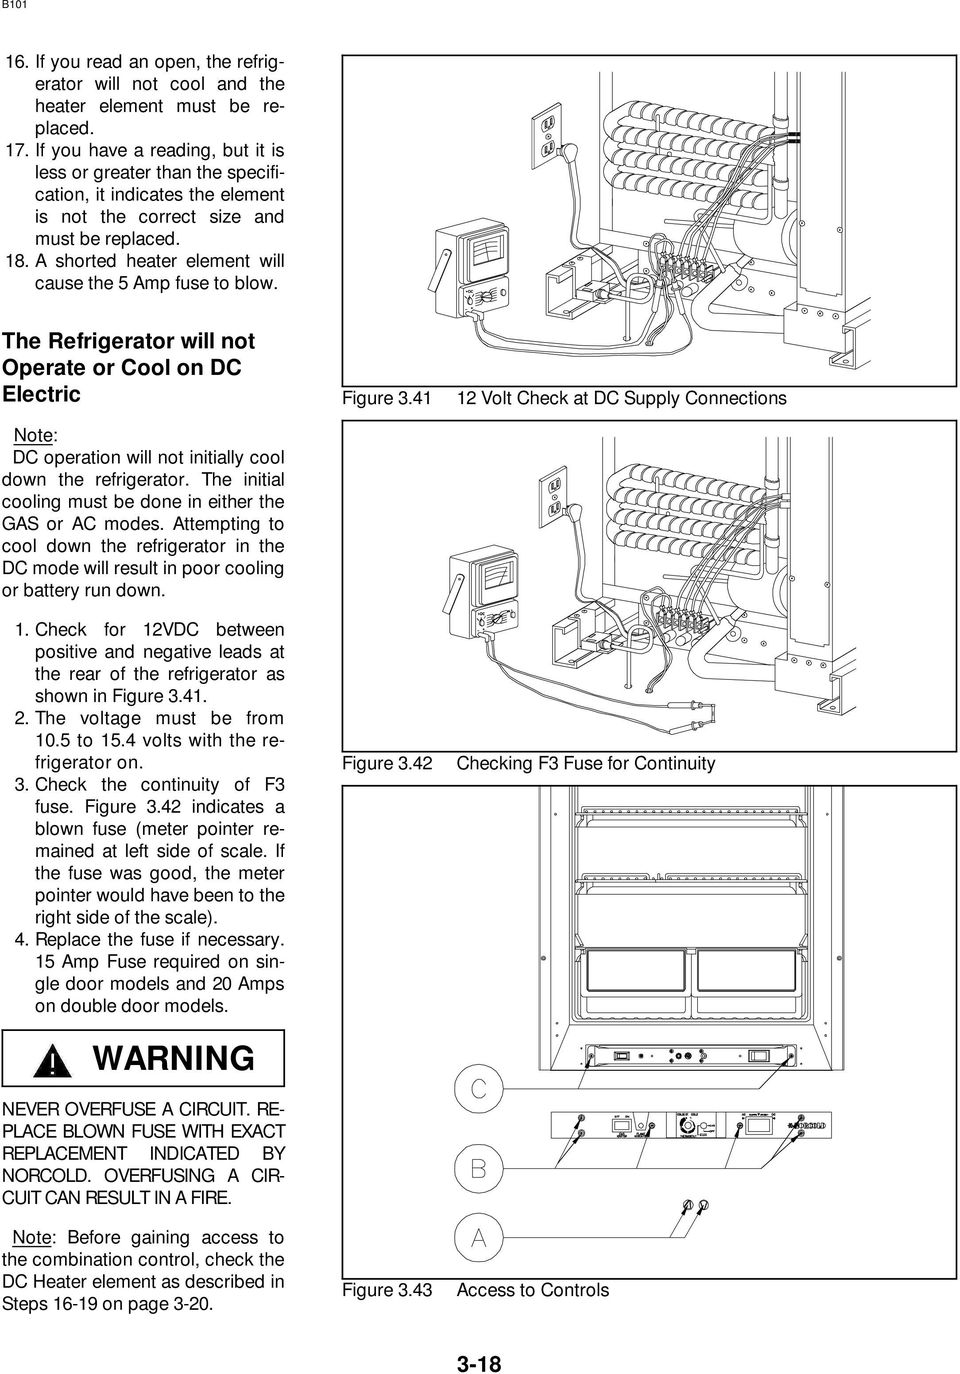 Norcold Repair Guide Models 442 443 452 453 462 463 482 Pdf Refrigerator Wiring Schematic A Shorted Heater Element Will Cause The 5 Amp Fuse To Blow